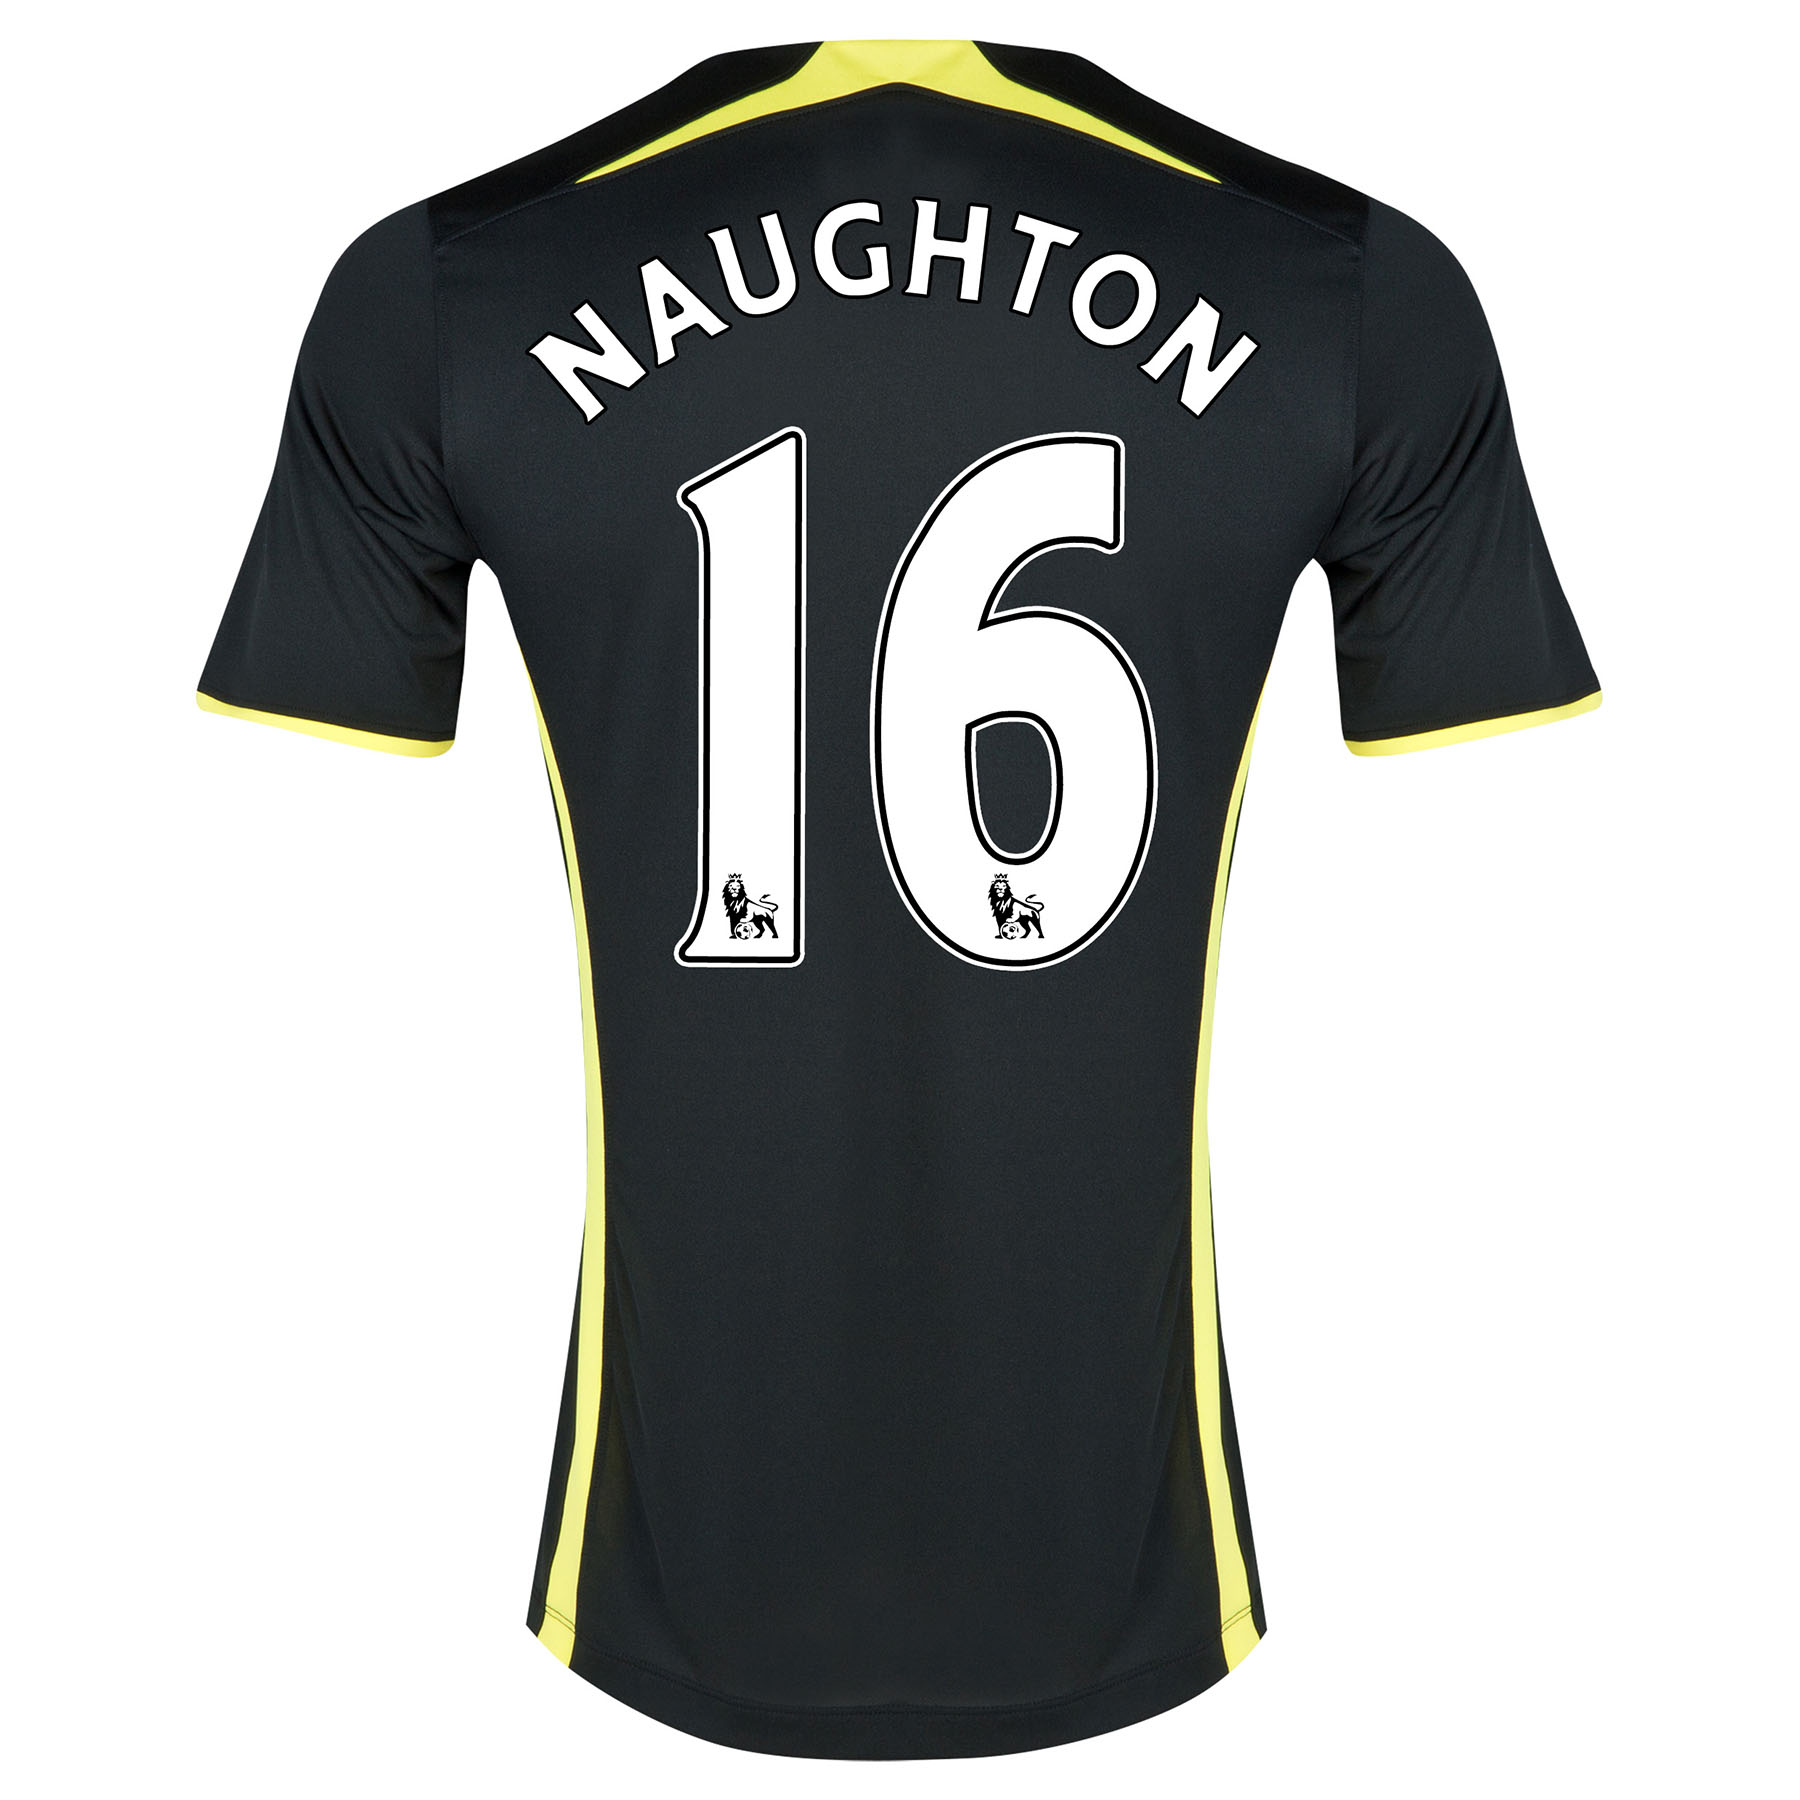 Tottenham Hotspur Away Shirt 2014/15 - Womens with Naughton 16 printing